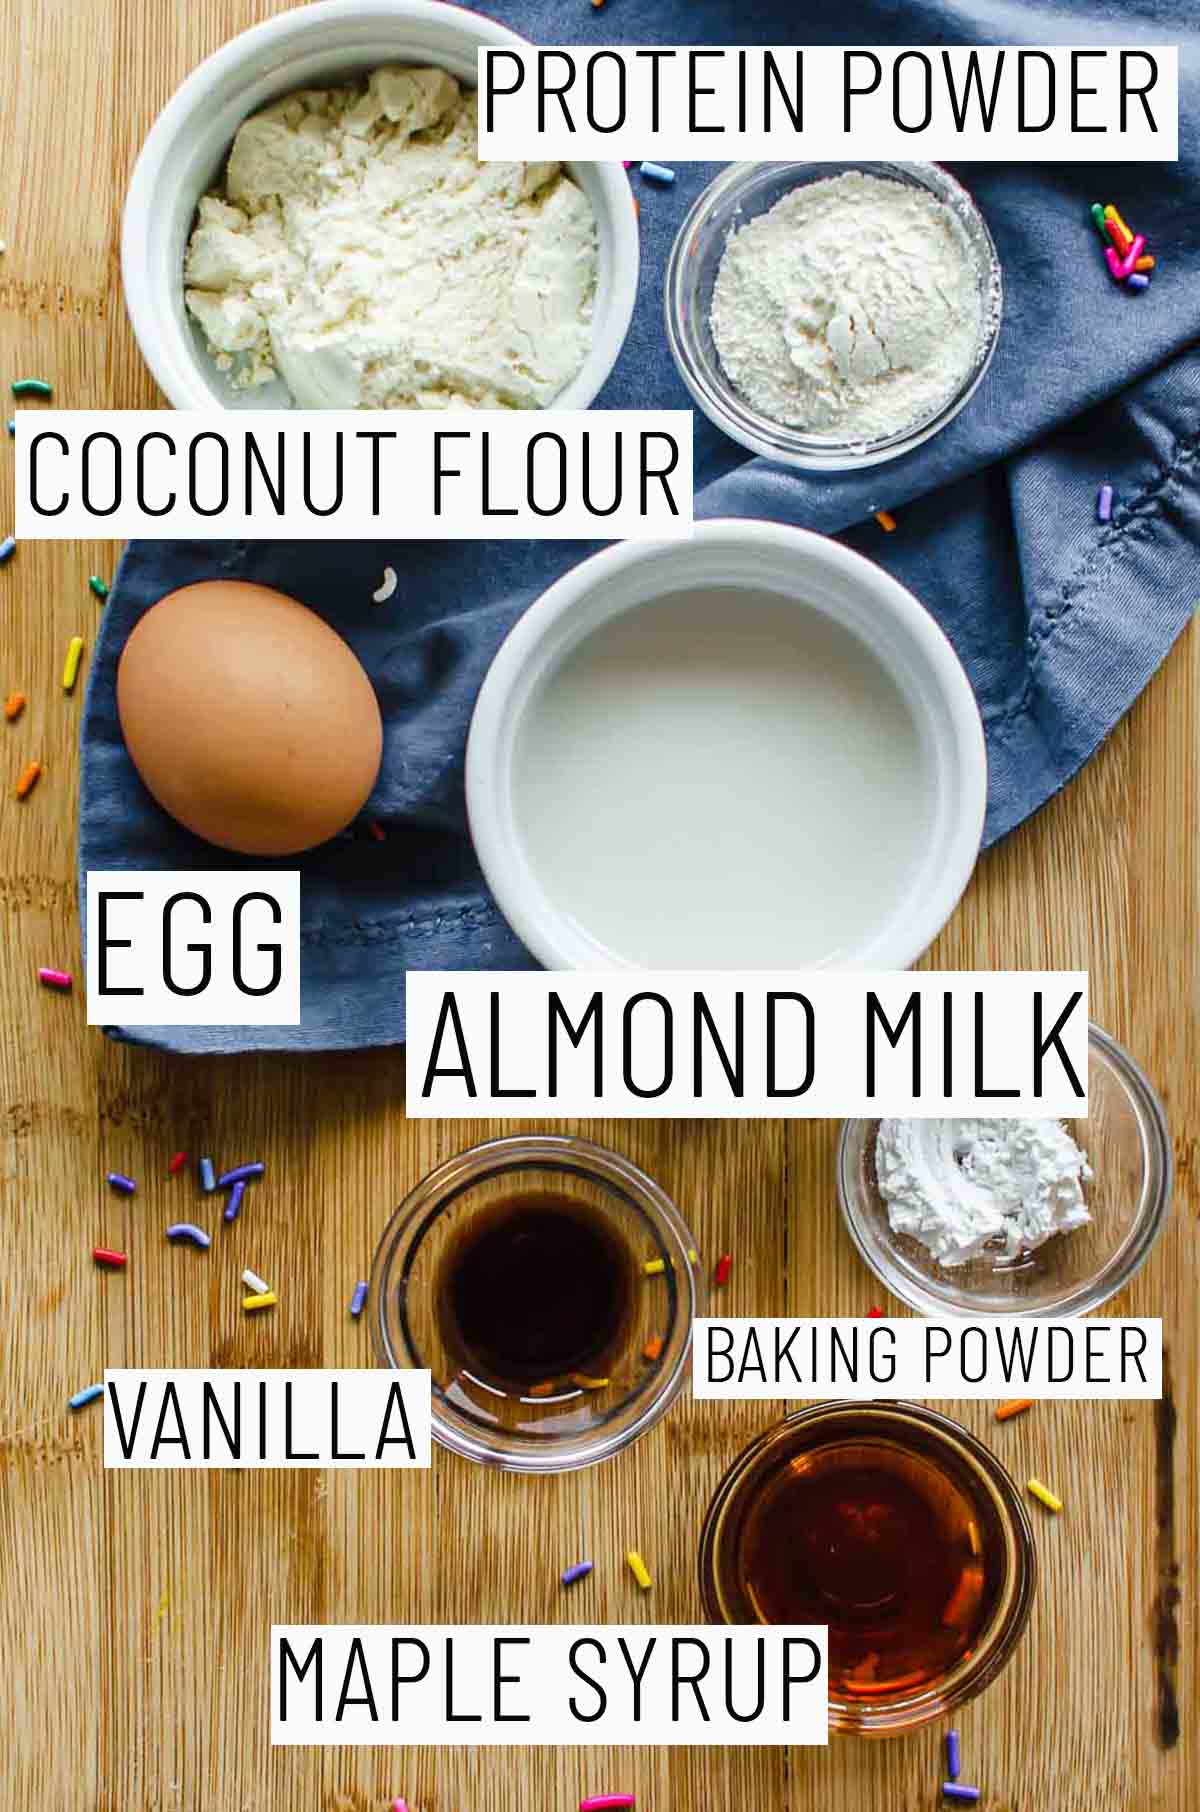 Flat lay image of portioned recipe ingredients including baking powder, maple syrup, vanilla, egg, coconut flour, and protein powder.